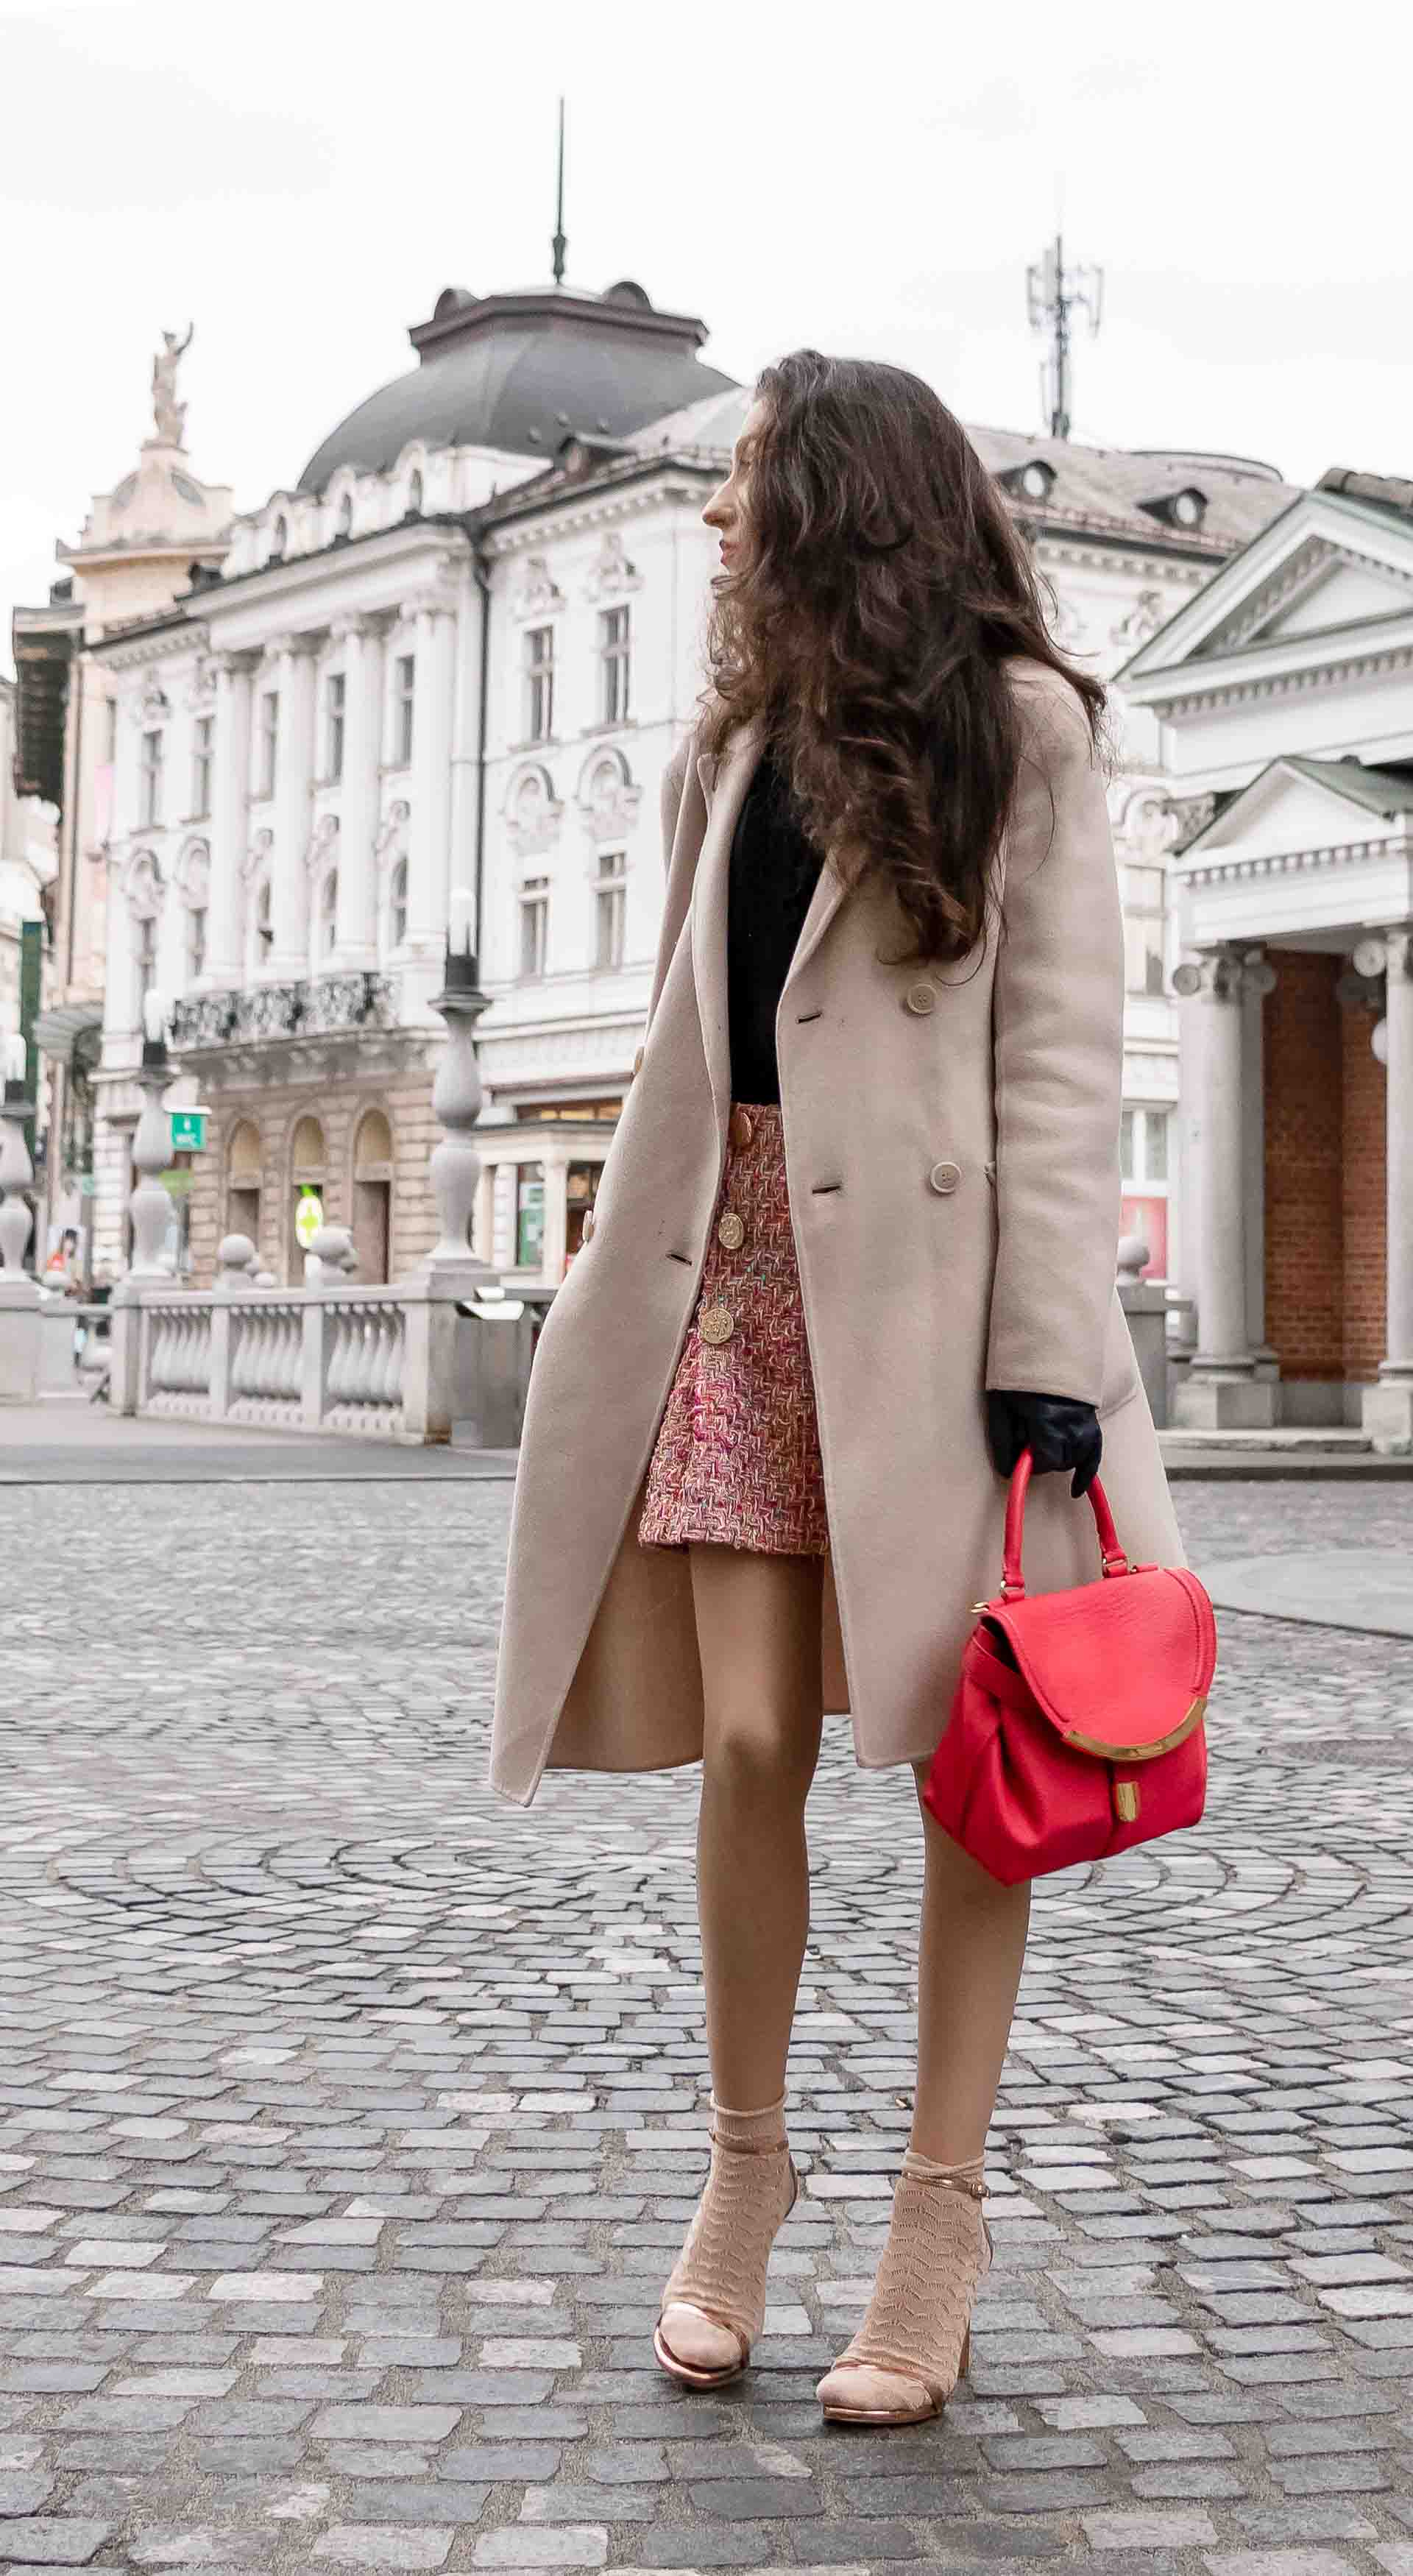 Fashion Blogger Veronika Lipar of Brunette from Wall Street dressed in bronze socks and high shine rose gold Songnudist sandals from Stuart Weitzman, tweed Storets mini skirt, black blouse, off white Weekend Maxmara coat while walking down the street in Ljubljana